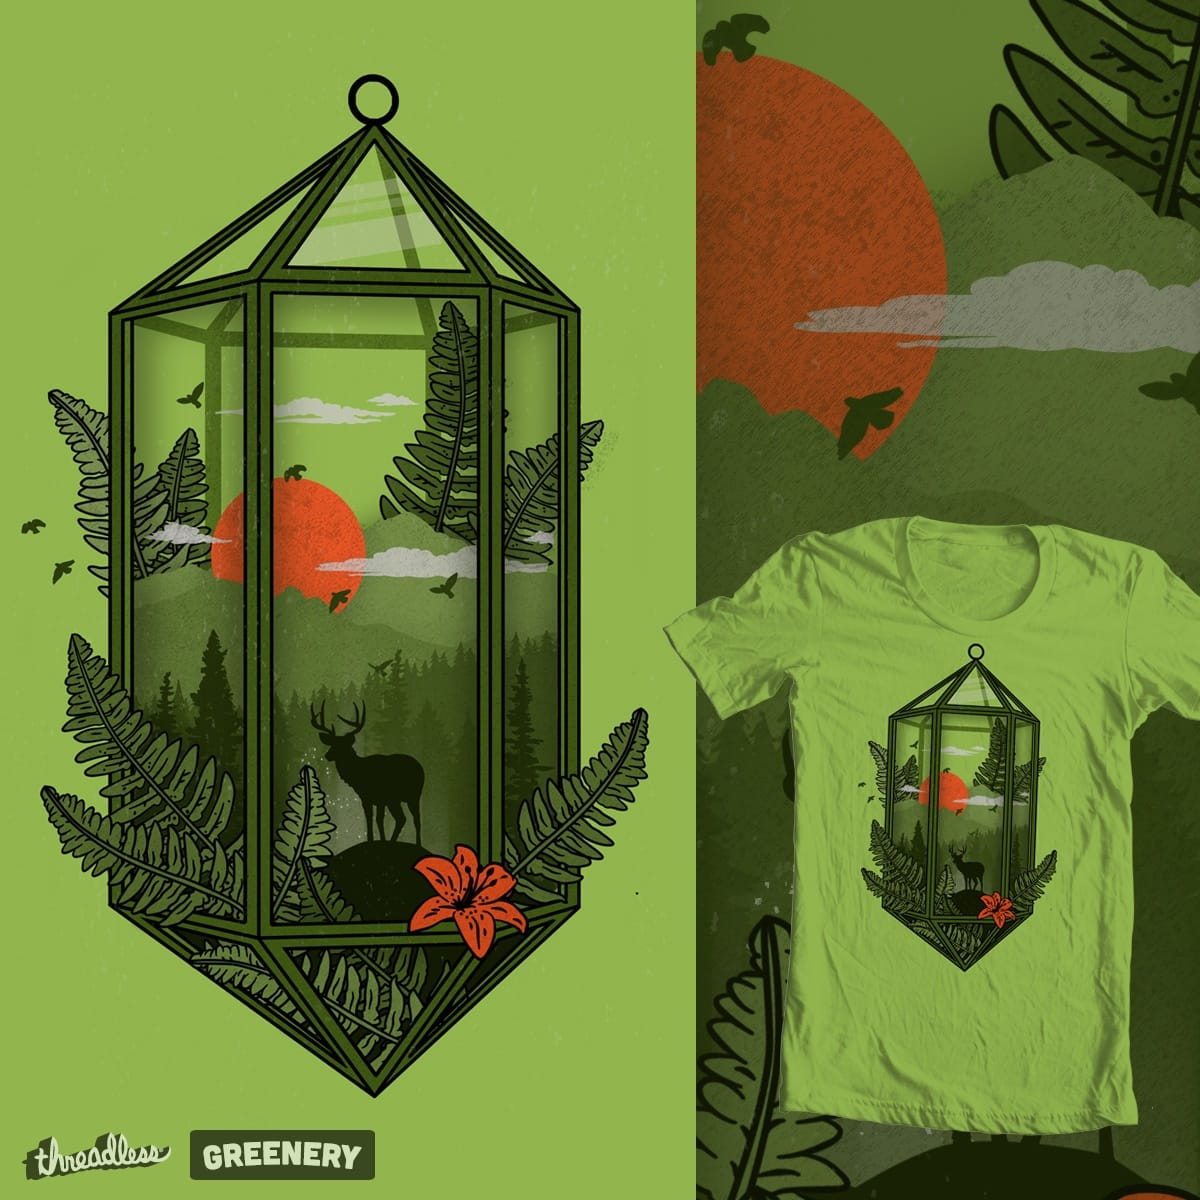 Terrarium par thechild sur Threadless